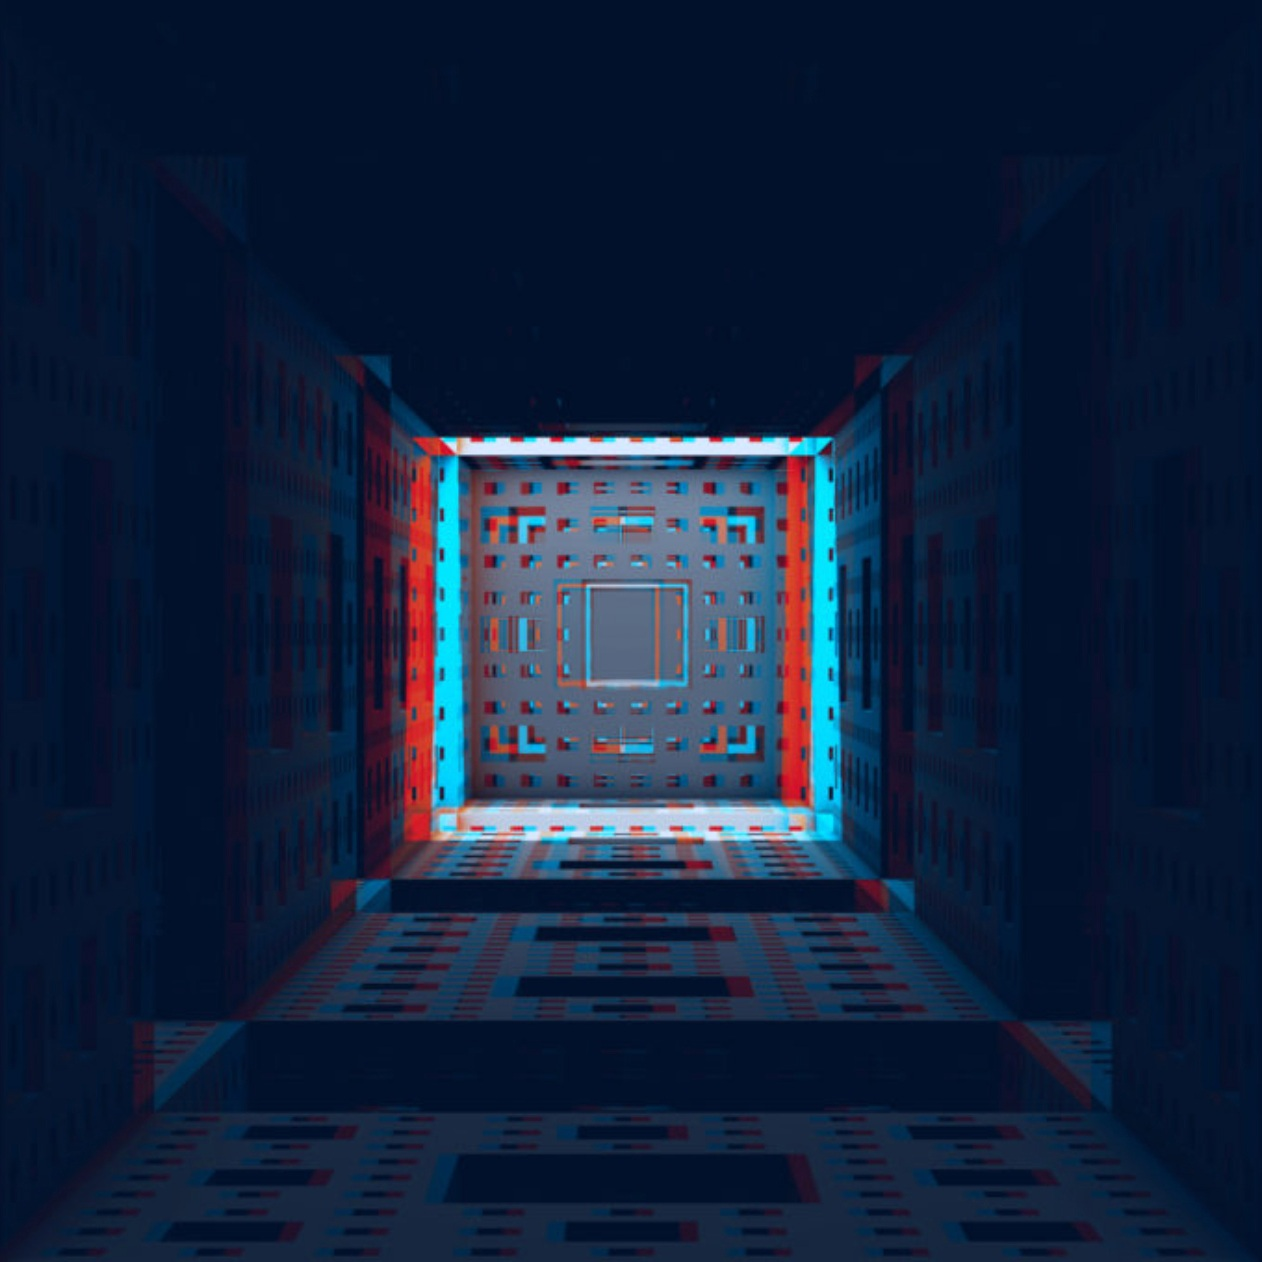 3D-Mapping-and-Virtual-Reality+%281%29.jpg